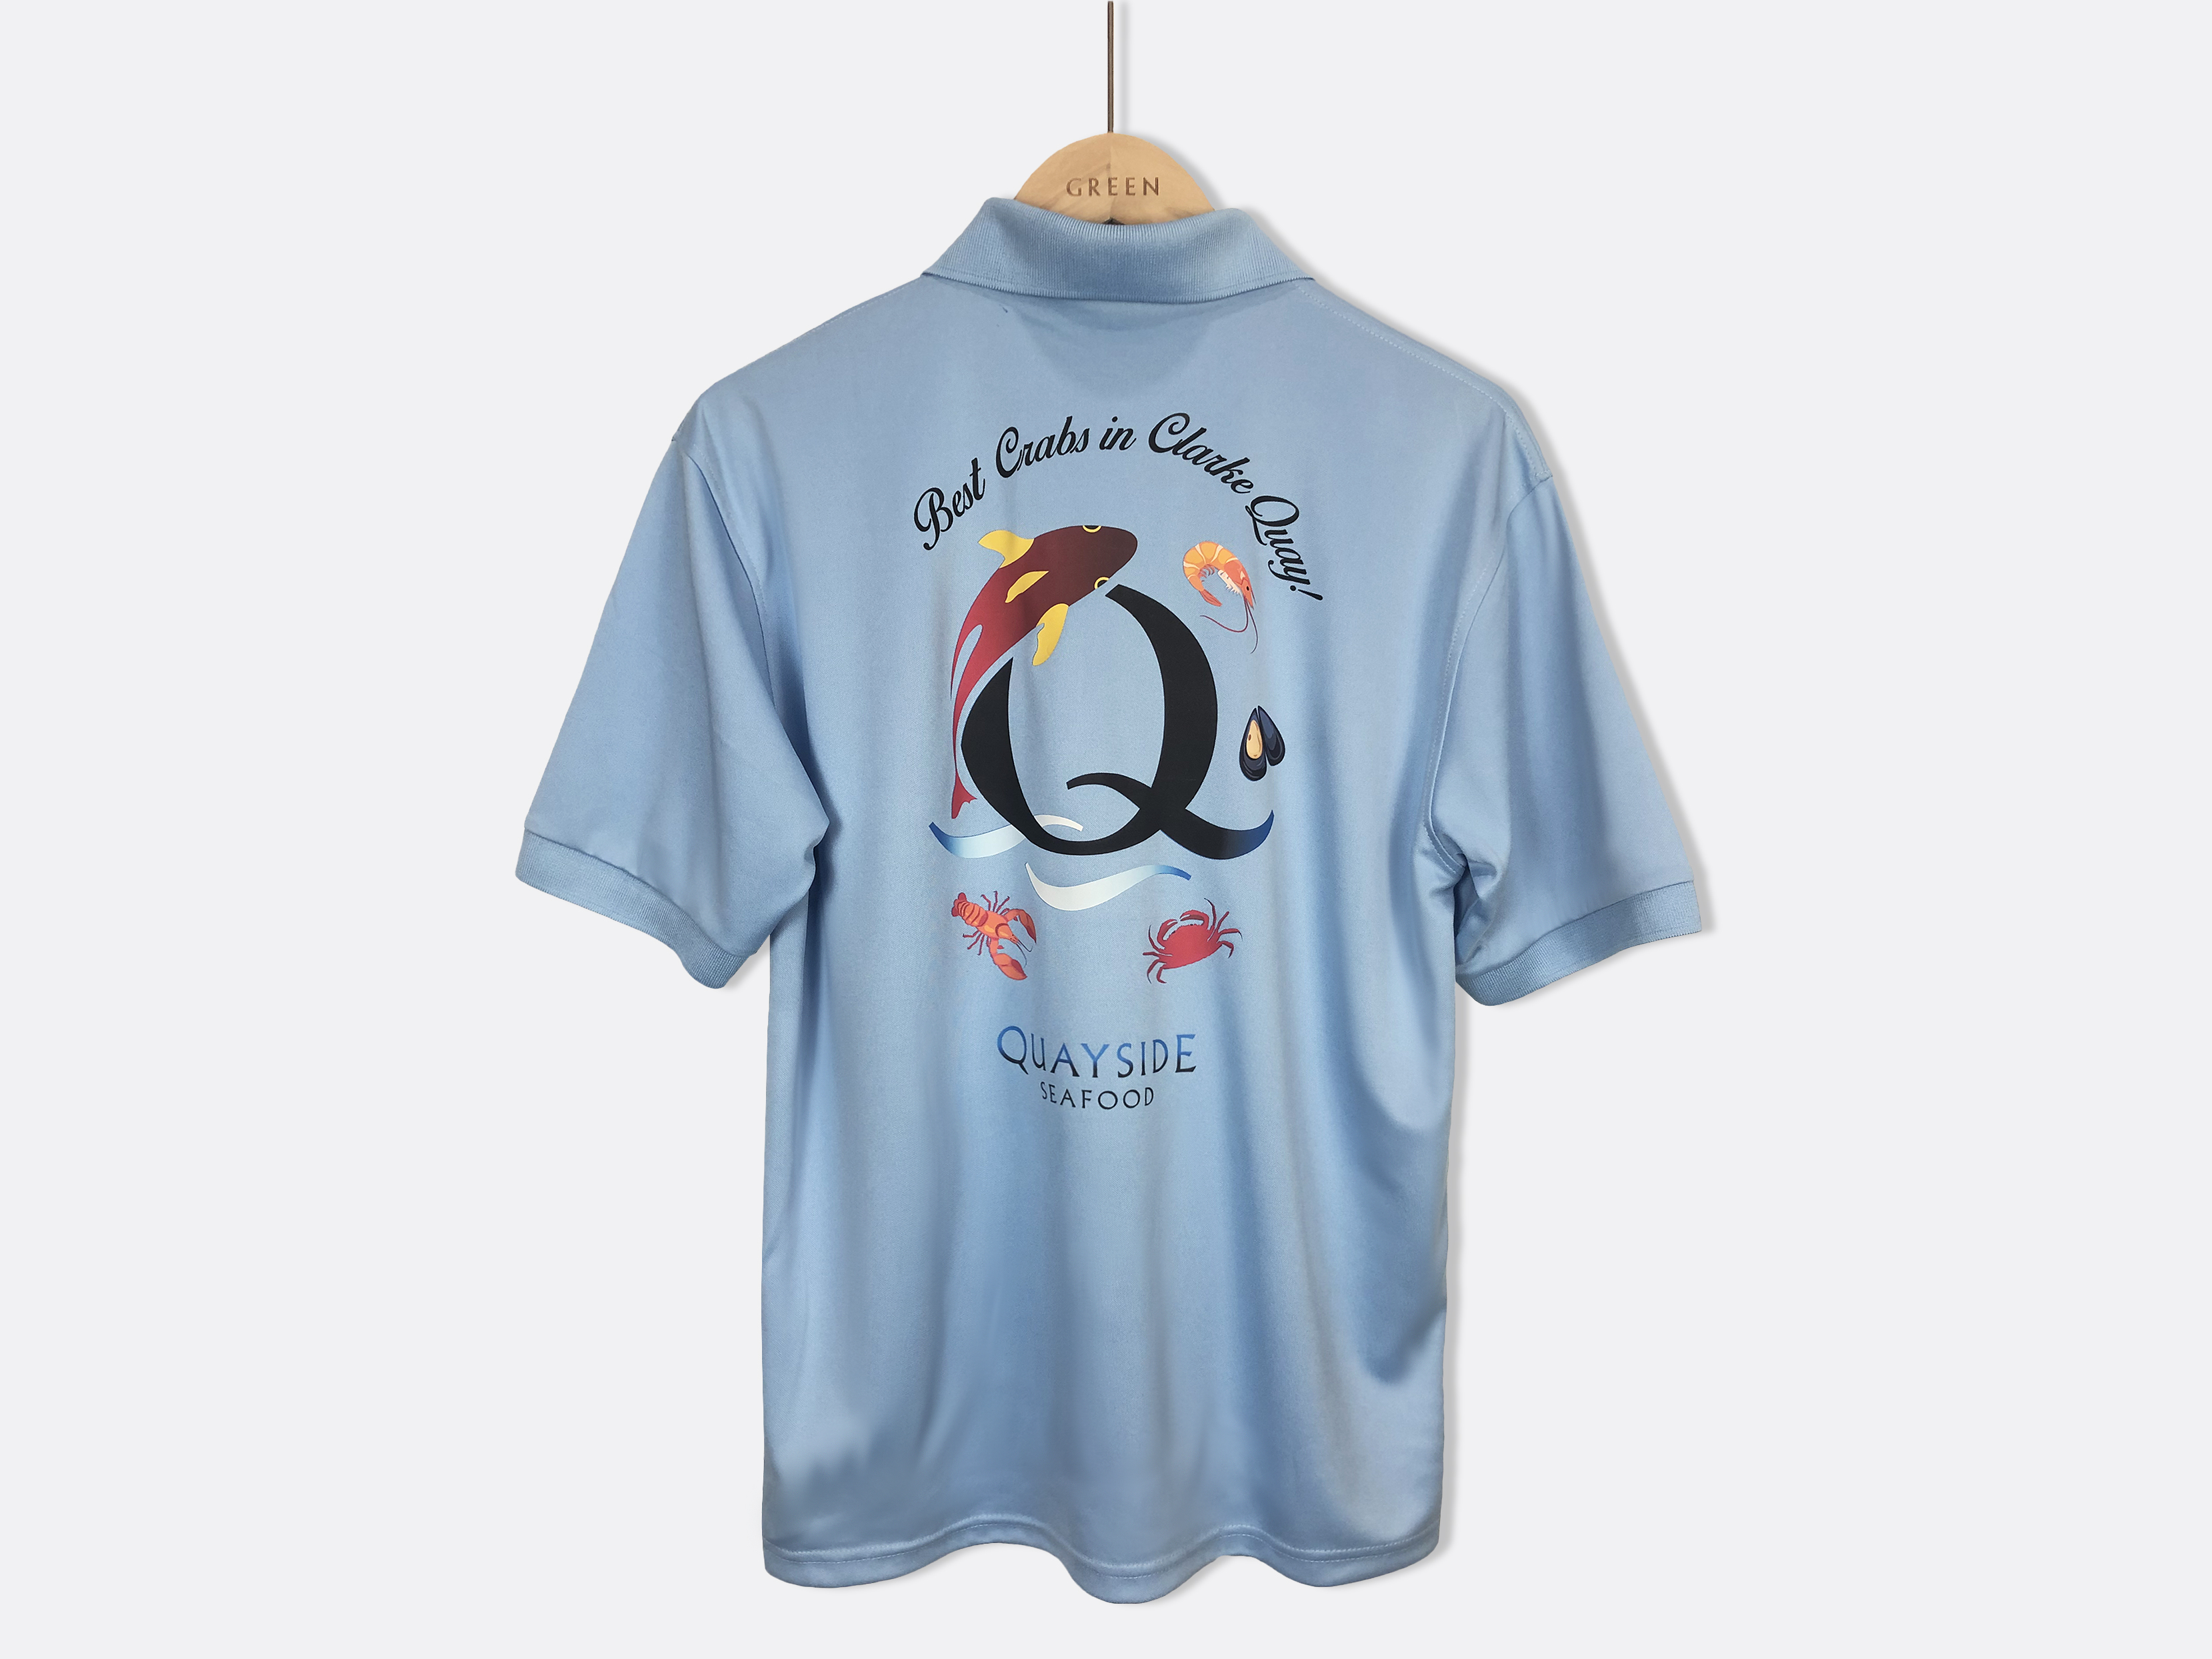 Quayside Seafood Singapore T-Shirt